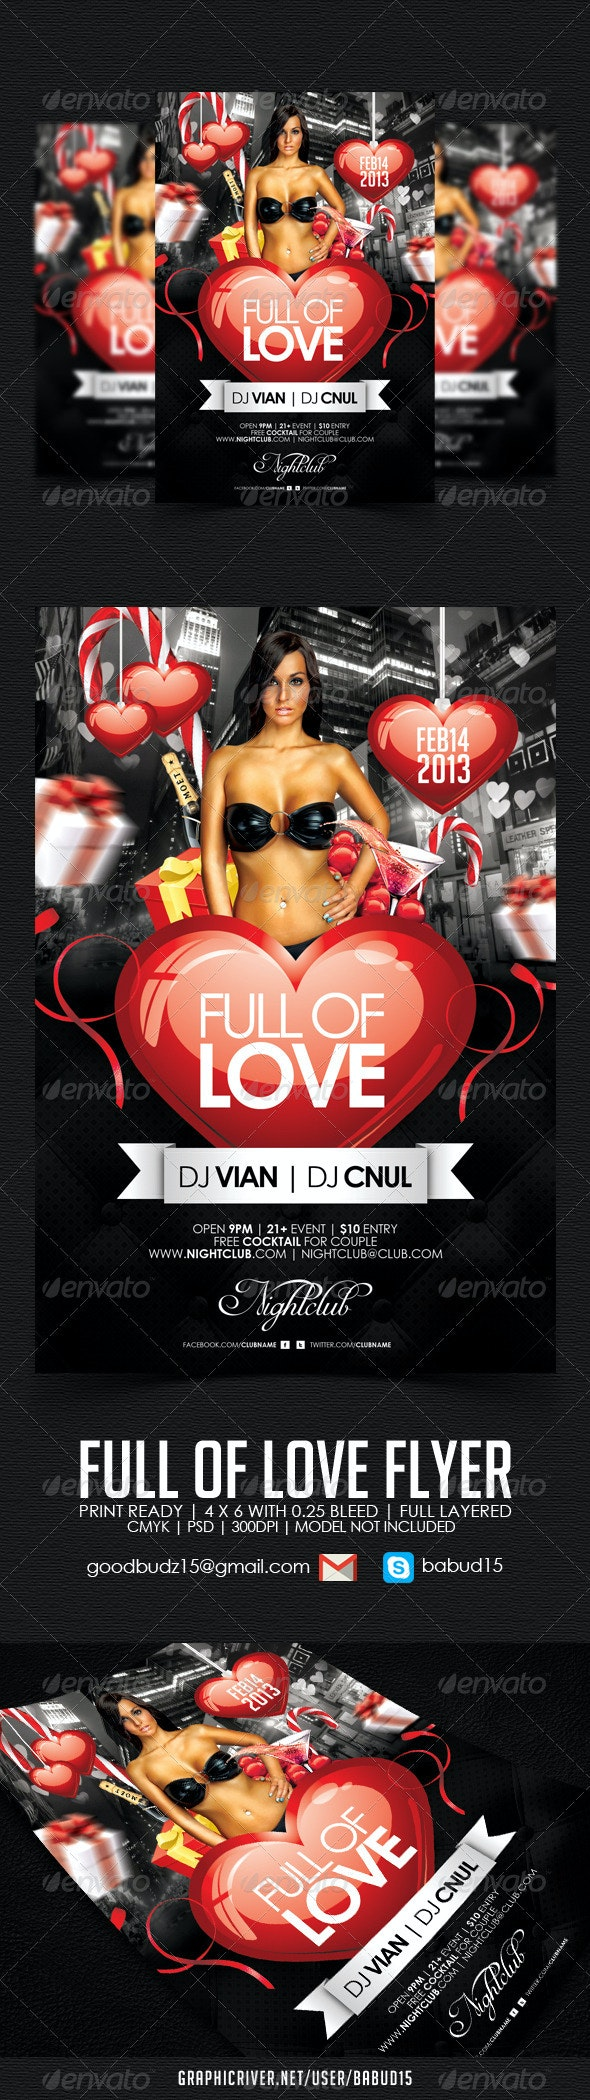 Full of Love Flyer Template - Events Flyers